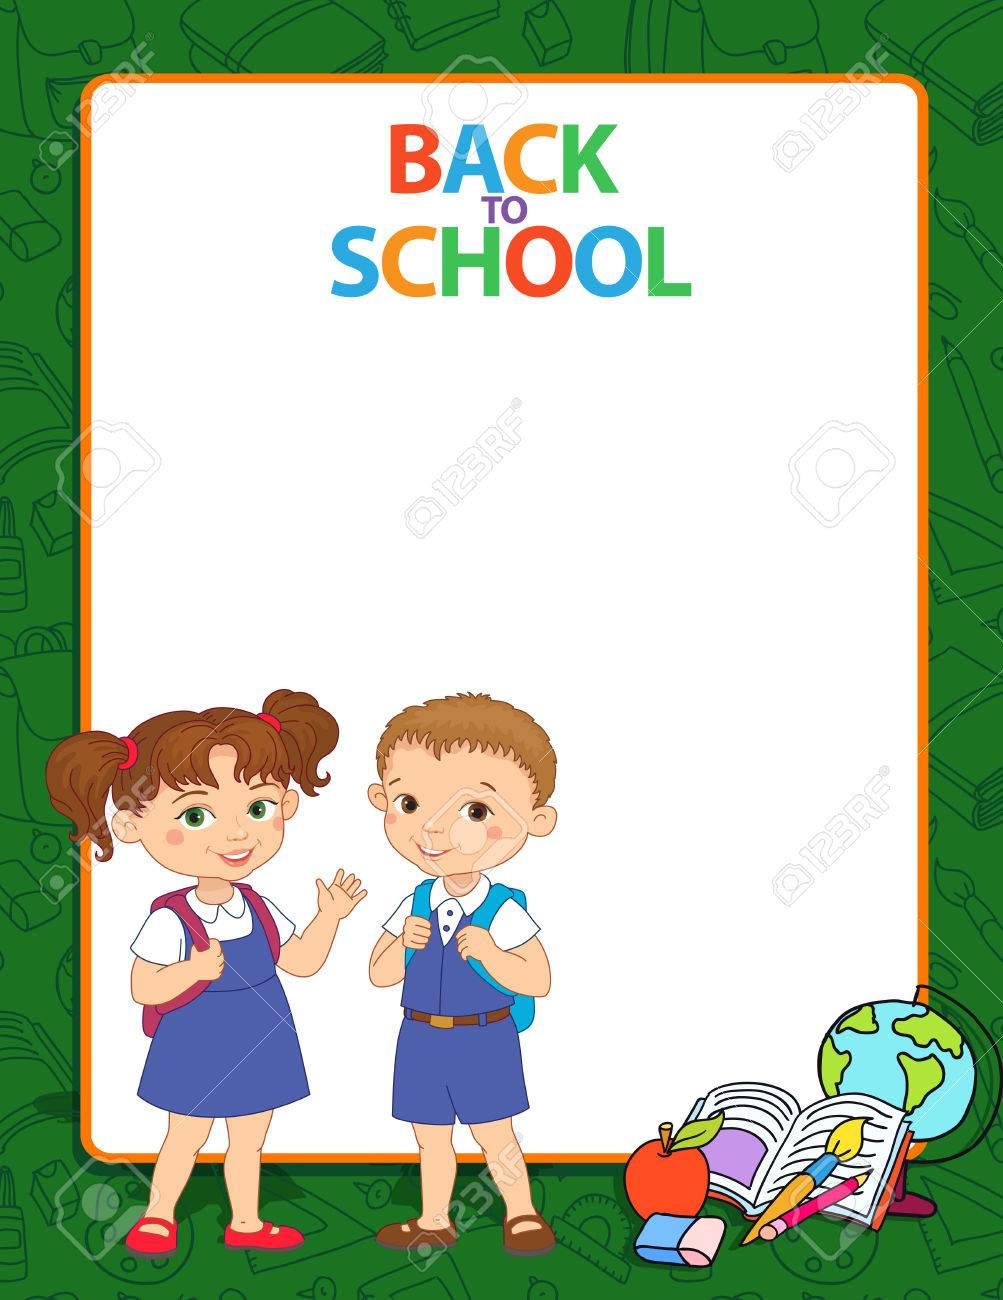 Banner Back To School Boy Girl Pupil Lettering Green Frame Vector